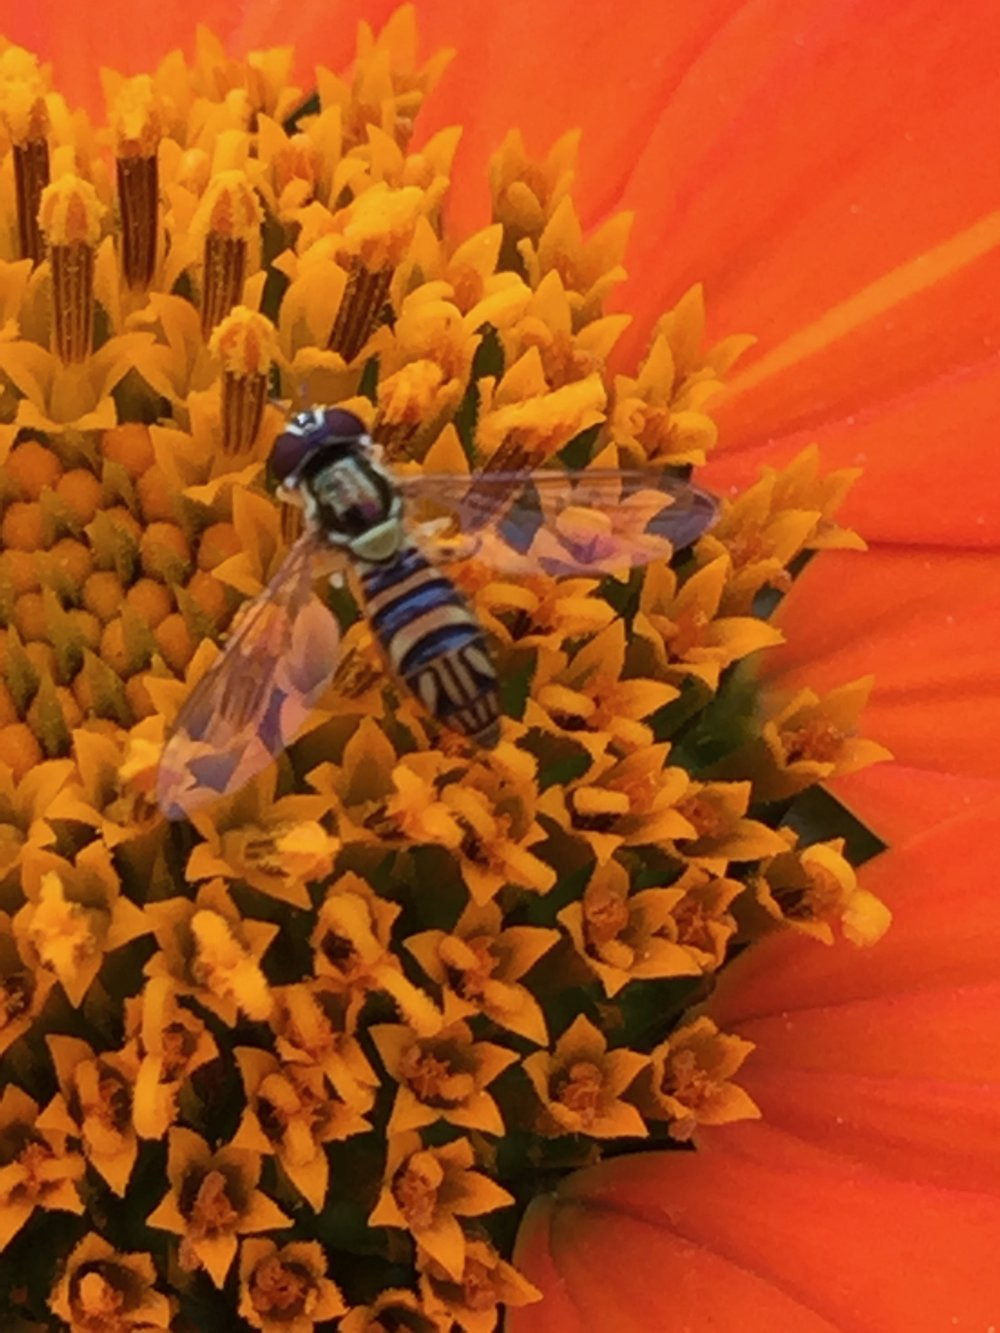 this is a hoverfly, though